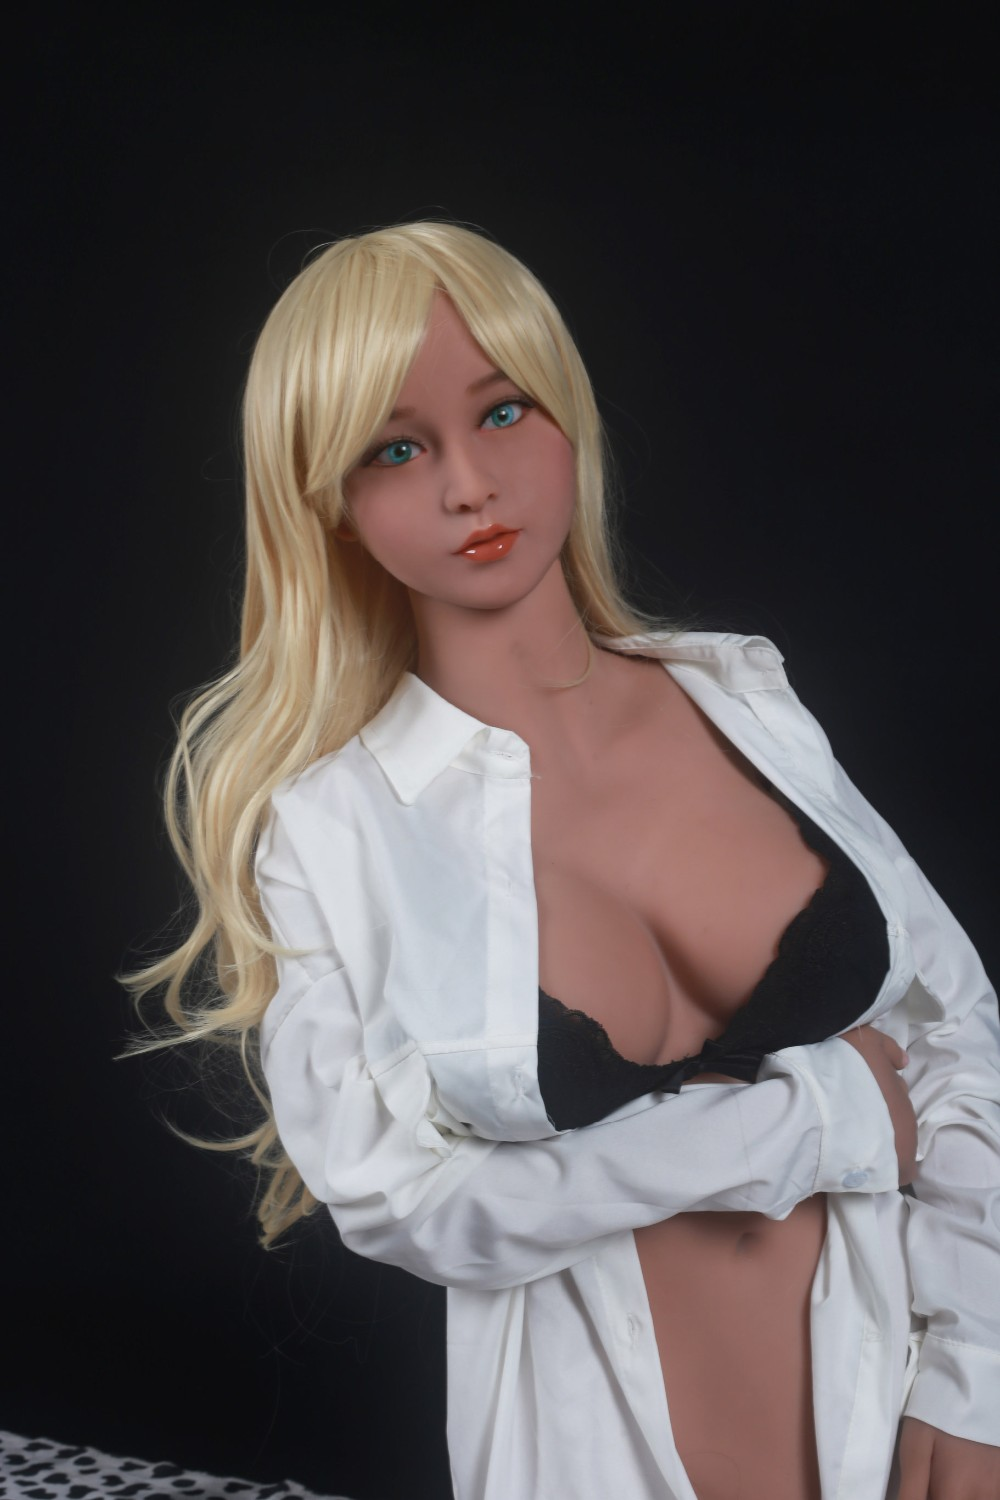 158cm Top quality lifelike silicone sex dolls skeleton, oral japanese love doll, life size female dolls, vagina real pussy sex158cm Top quality lifelike silicone sex dolls skeleton, oral japanese love doll, life size female dolls, vagina real pussy sex